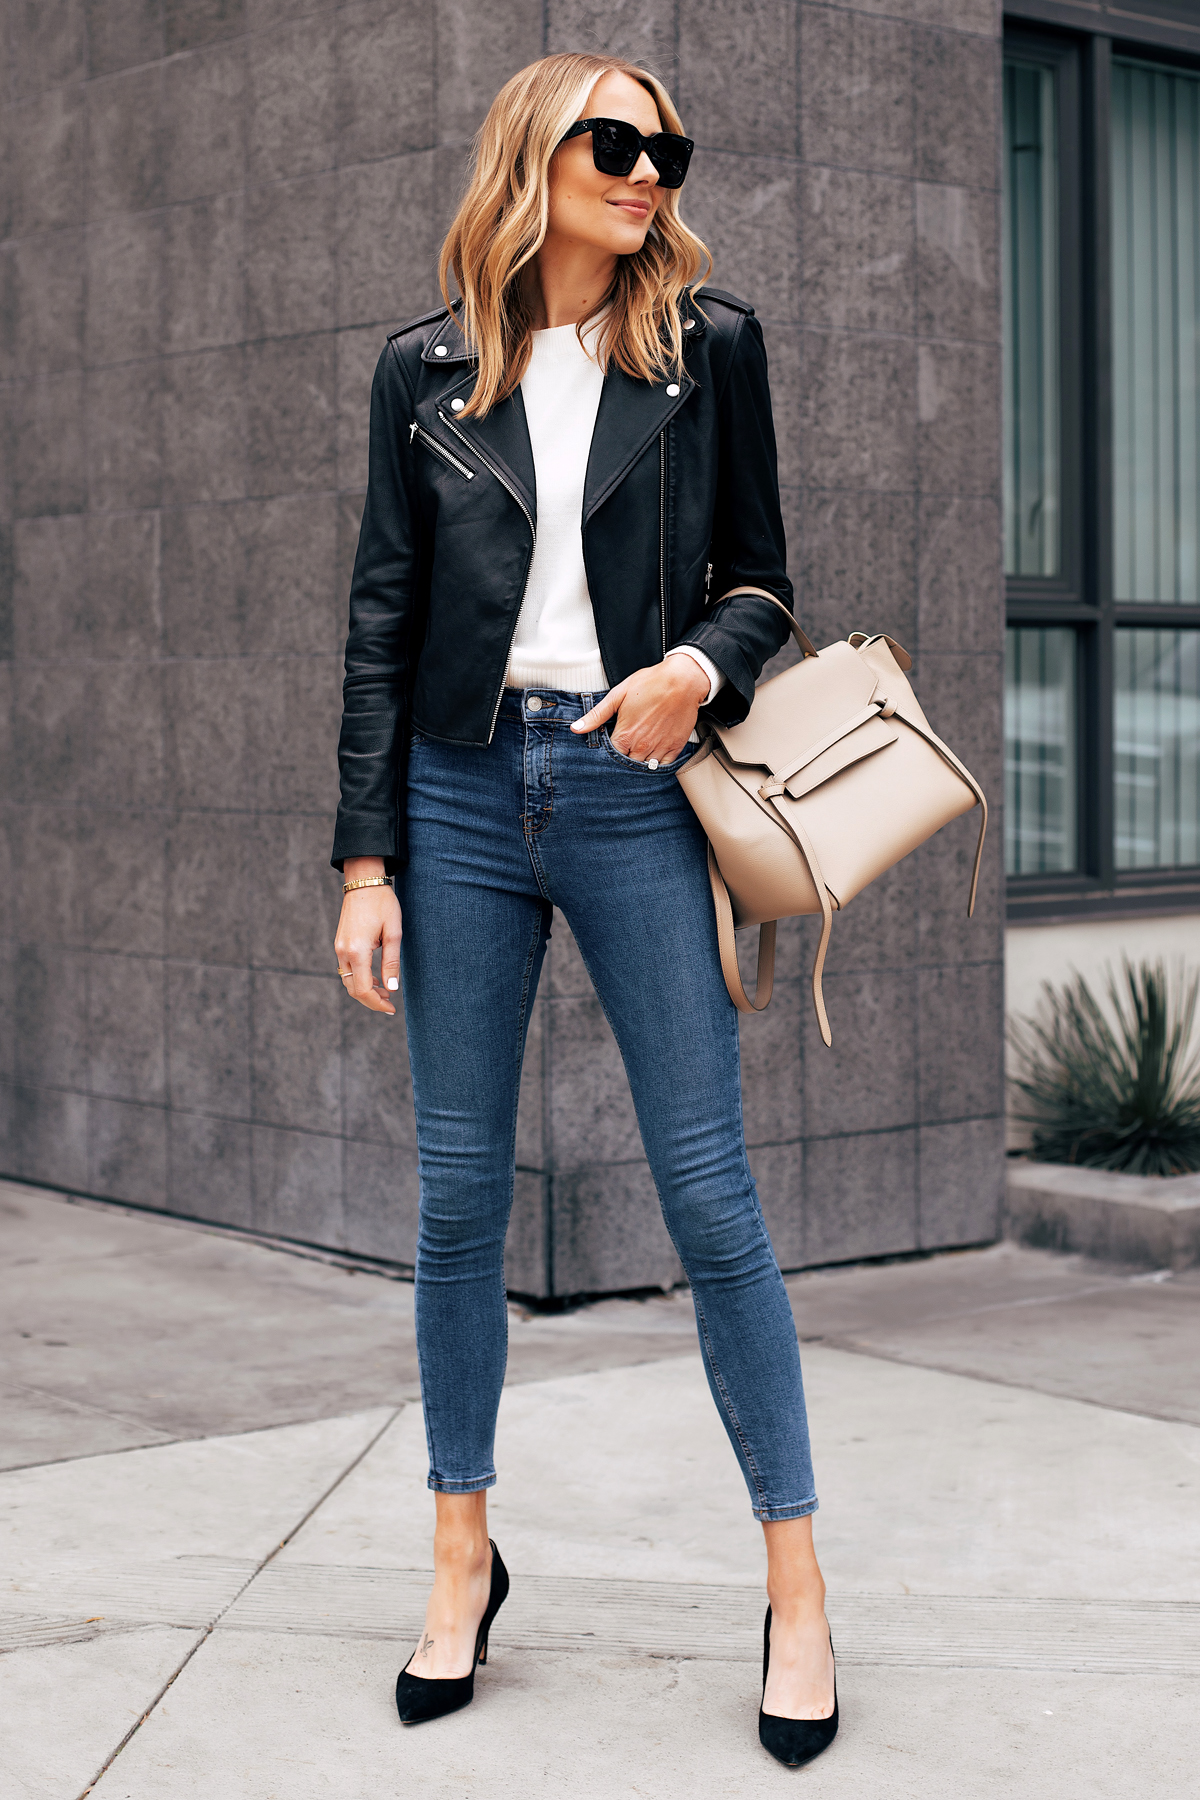 Fashion Jackson Capsule Wardrobe Wearing Club Monaco Black Leather Jacket White Sweater Topshop Denim Jamie Jeans Black Pumps Celine Mini Belt Bag